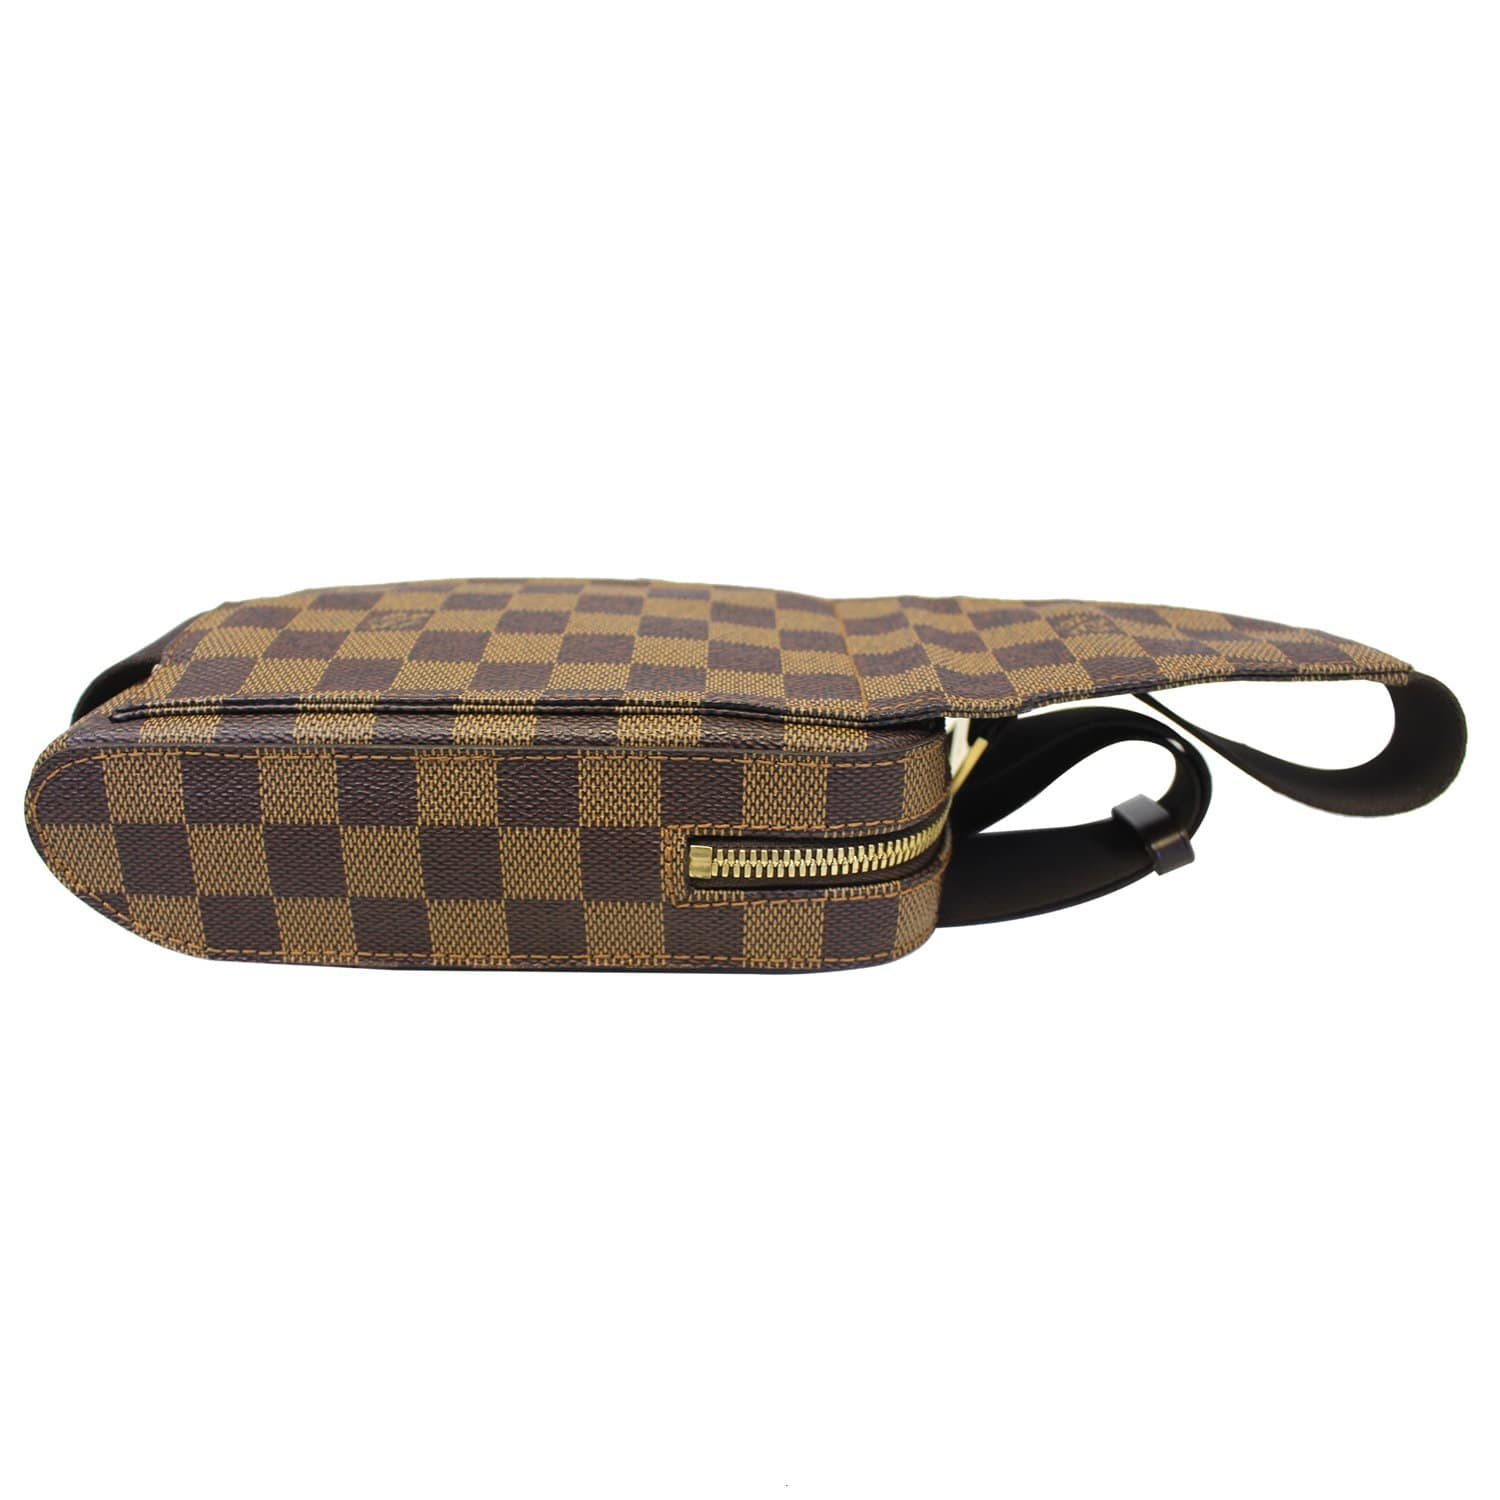 5d2d80b21b41 LOUIS VUITTON Damier Ebene Geronimos Brown Hip Bag-US